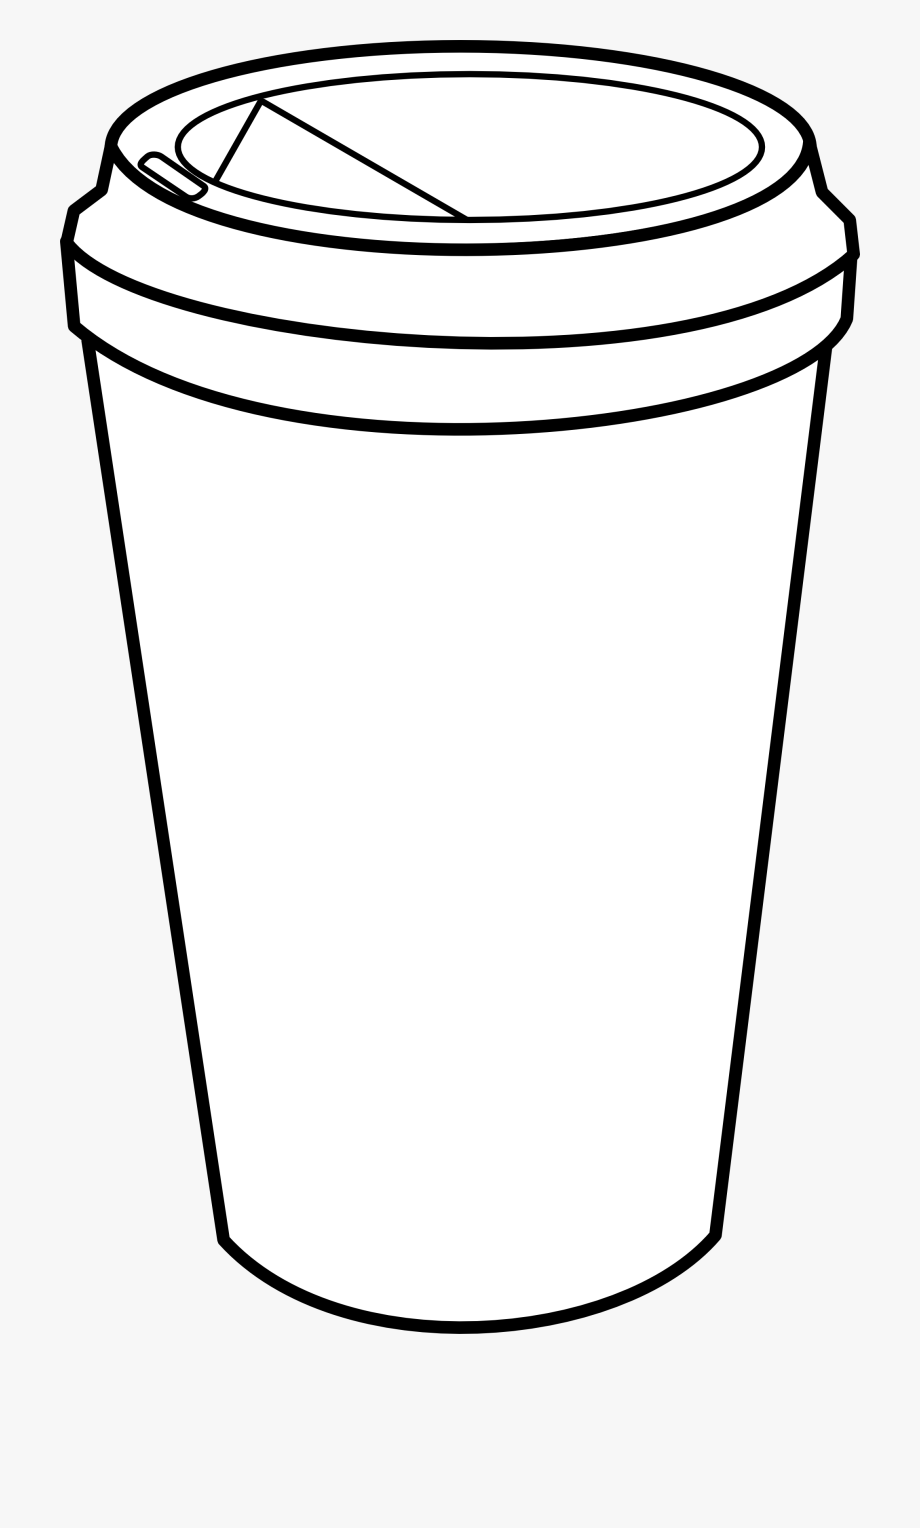 Clipart Free Library Starbucks Coffee Cup Clipart.